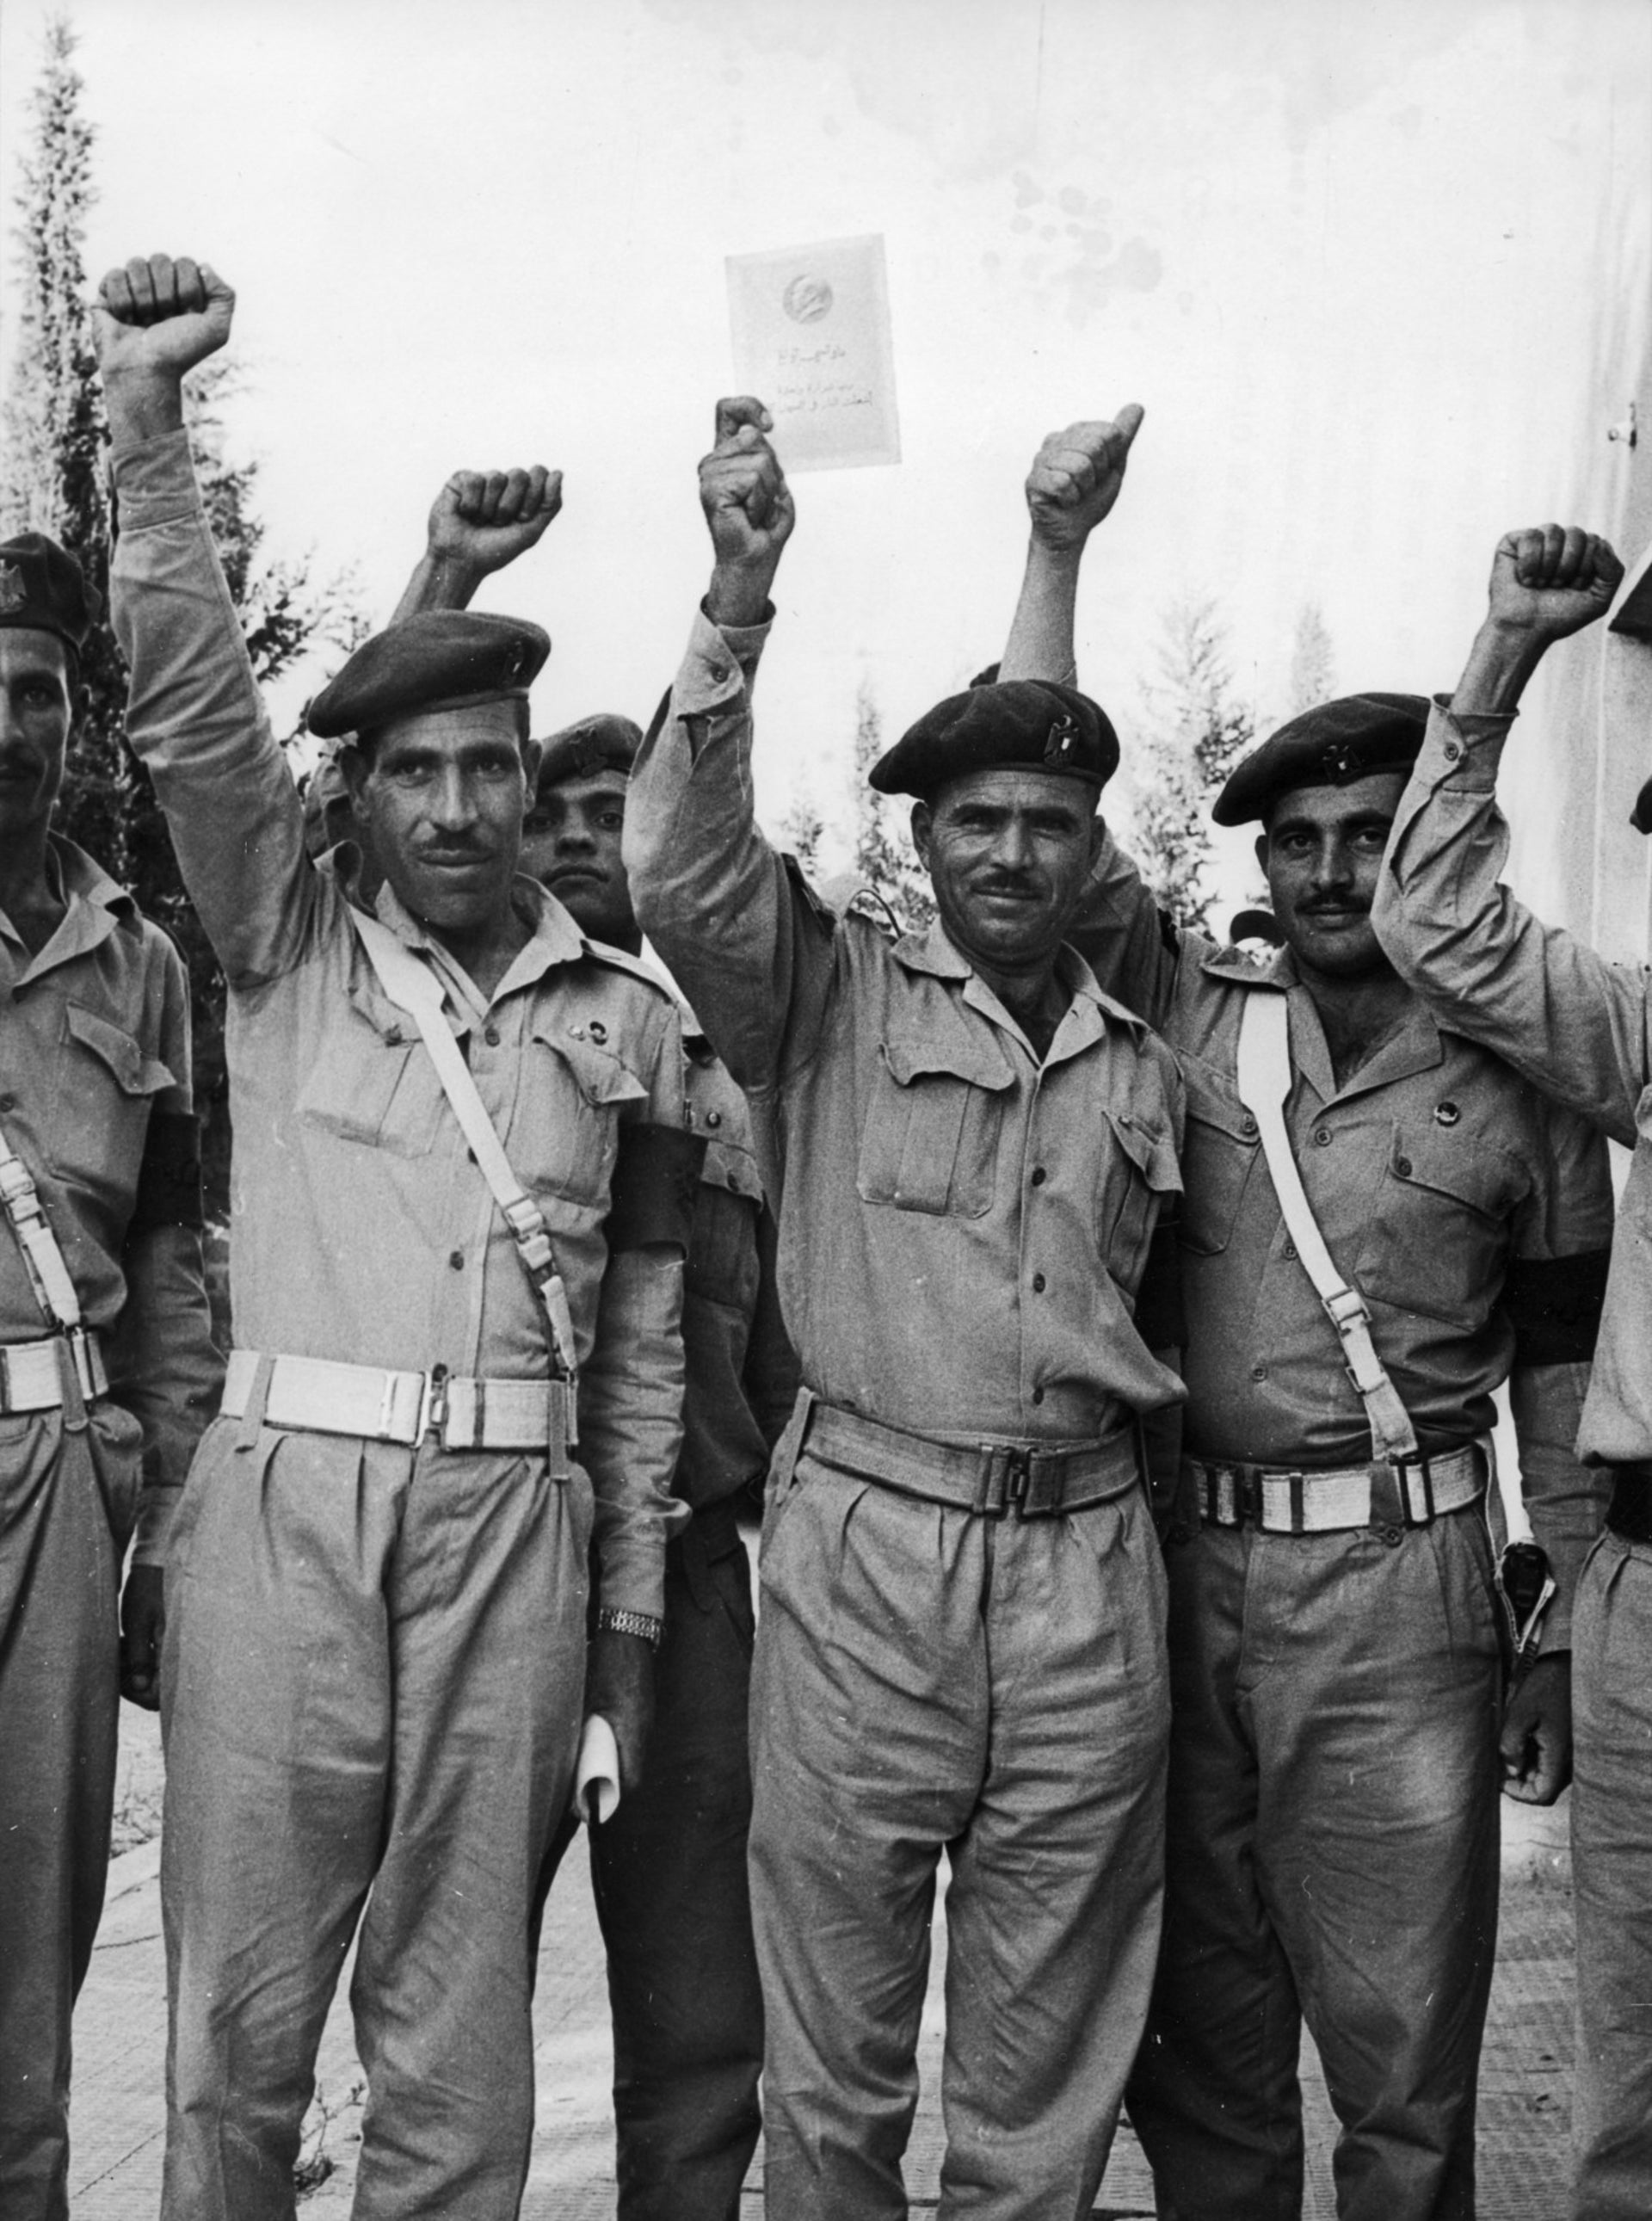 Fighters from the Palestine Liberation Army holding high Chairman Mao's works to express their respect and love for the Chinese communist leader in 1967.